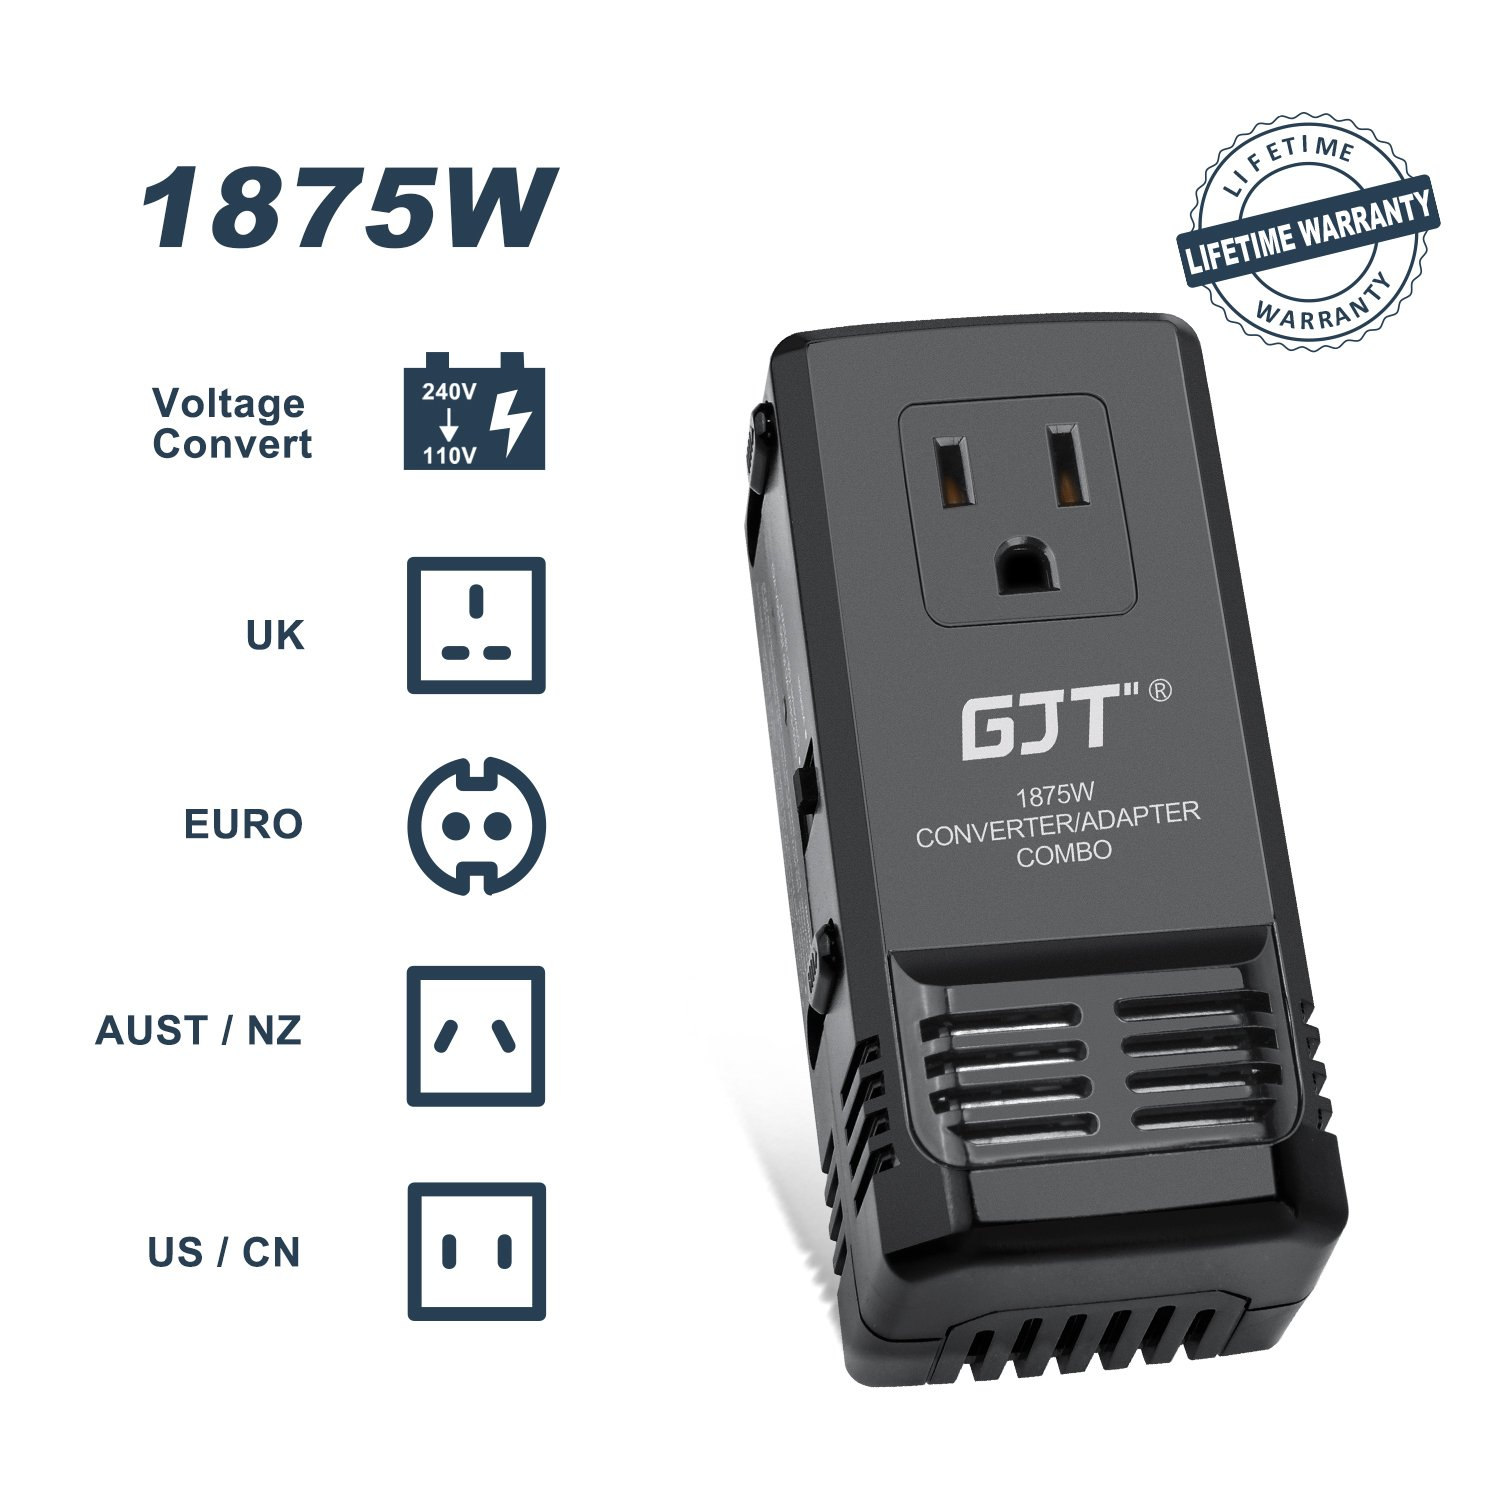 GJT 1875W International Power Converter and Adapter Combo, Step Down 240V-220V to 120V -110V AC Power Transformer for Hair Dryer etc,Universal Travel Adapter Plug UK/AU/US/EU Suits over 150 Countries